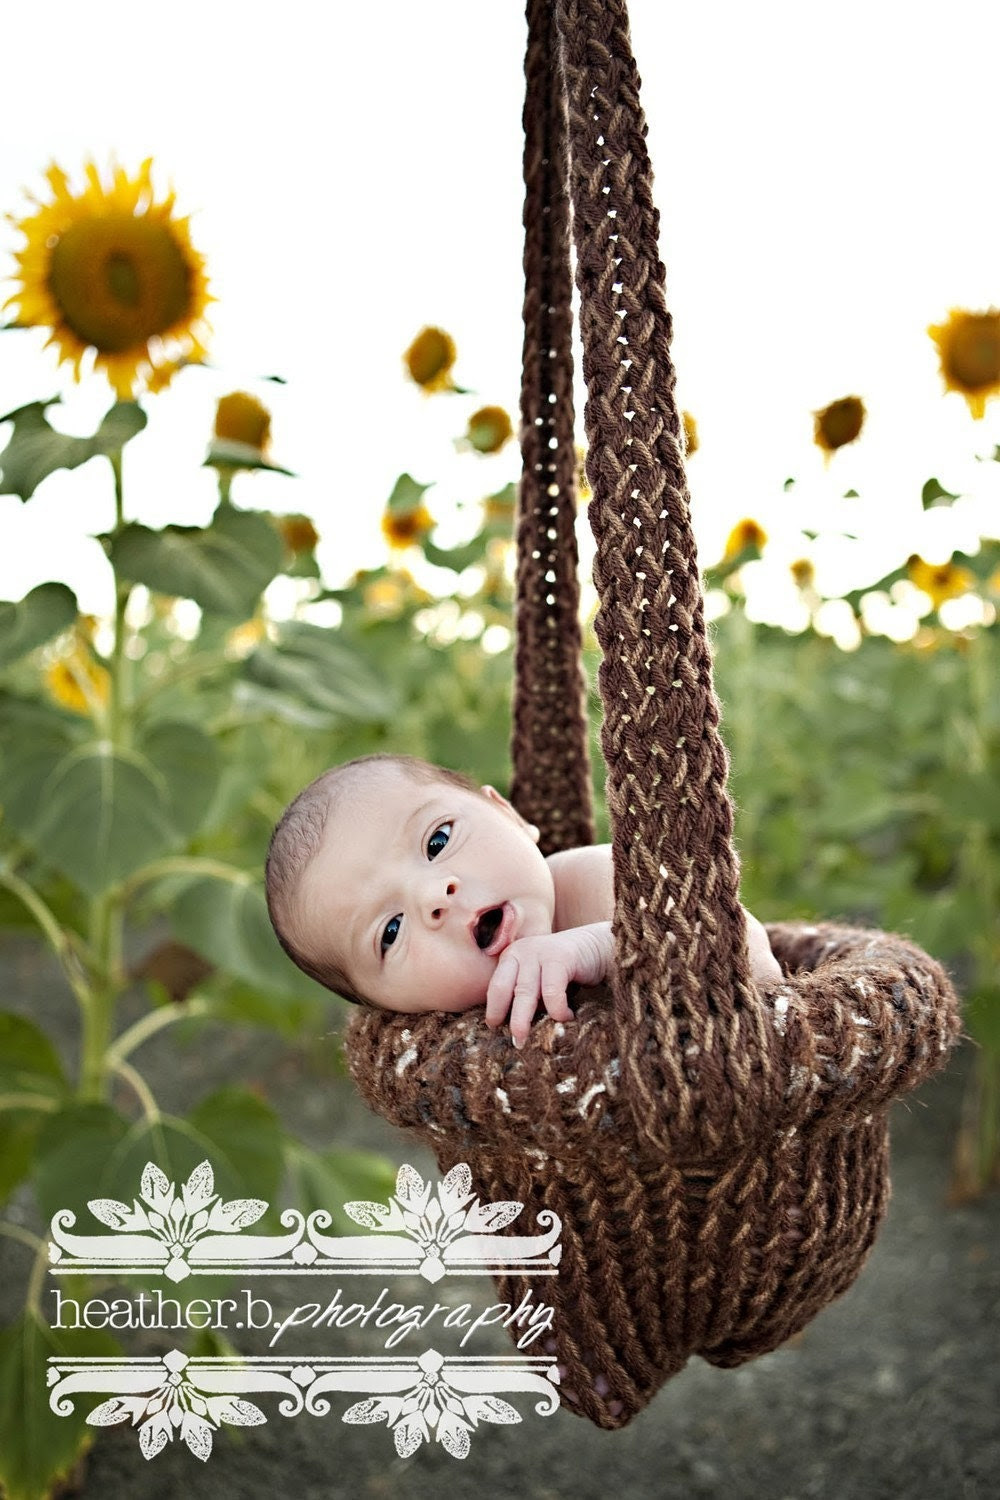 My Pride and Joy.....The ORIGINAL Knitted Hanging Baby Basket Photo Prop.....Caramel Chocolate Bar.....015HBB.....Copyright Product.....Can ONLY Purchase From Me